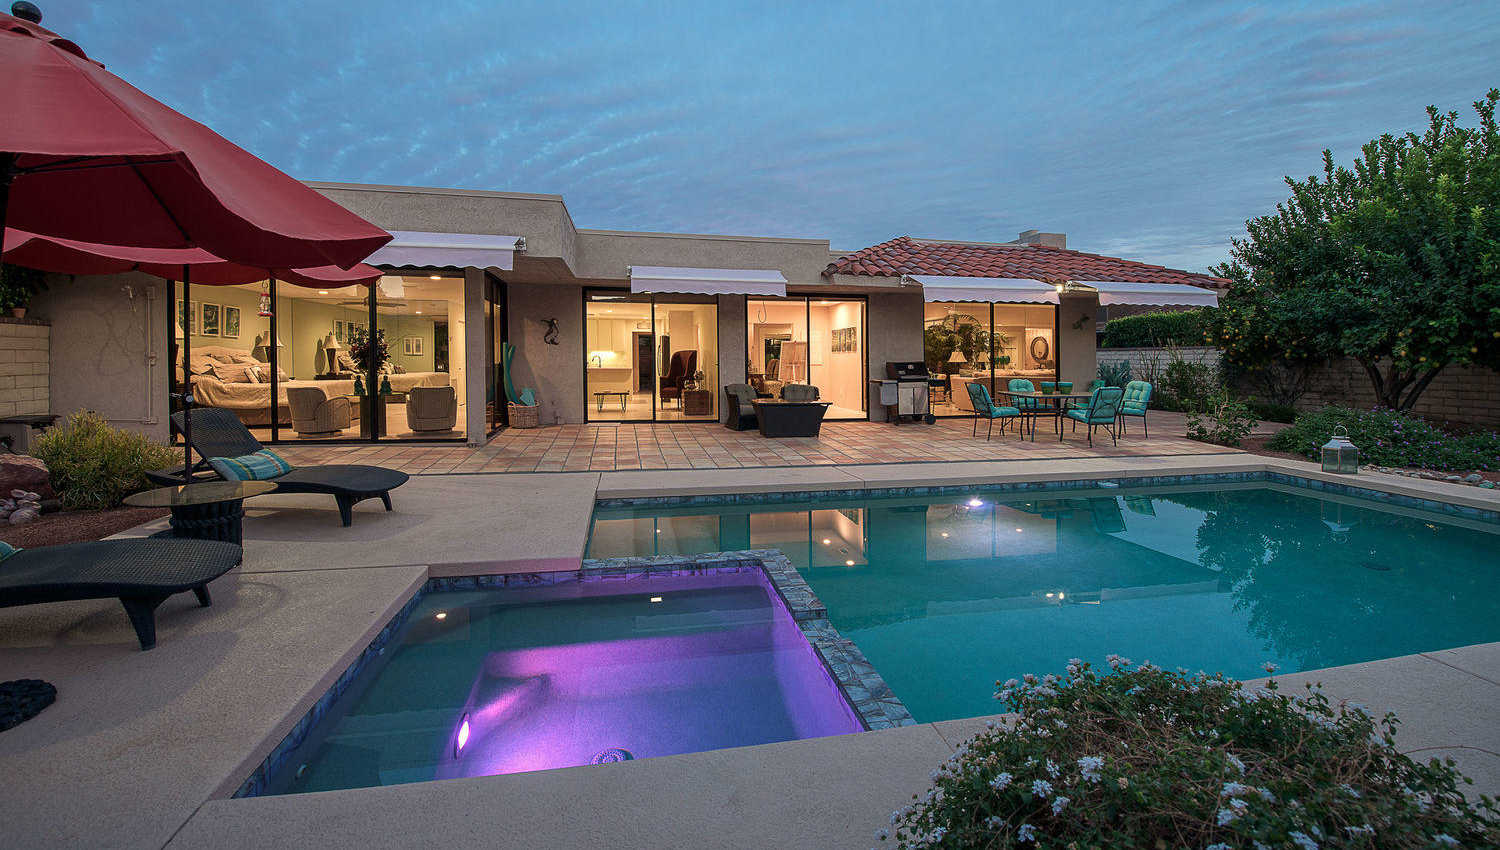 $725,000 - 3Br/3Ba -  for Sale in The Springs Country Club, Rancho Mirage